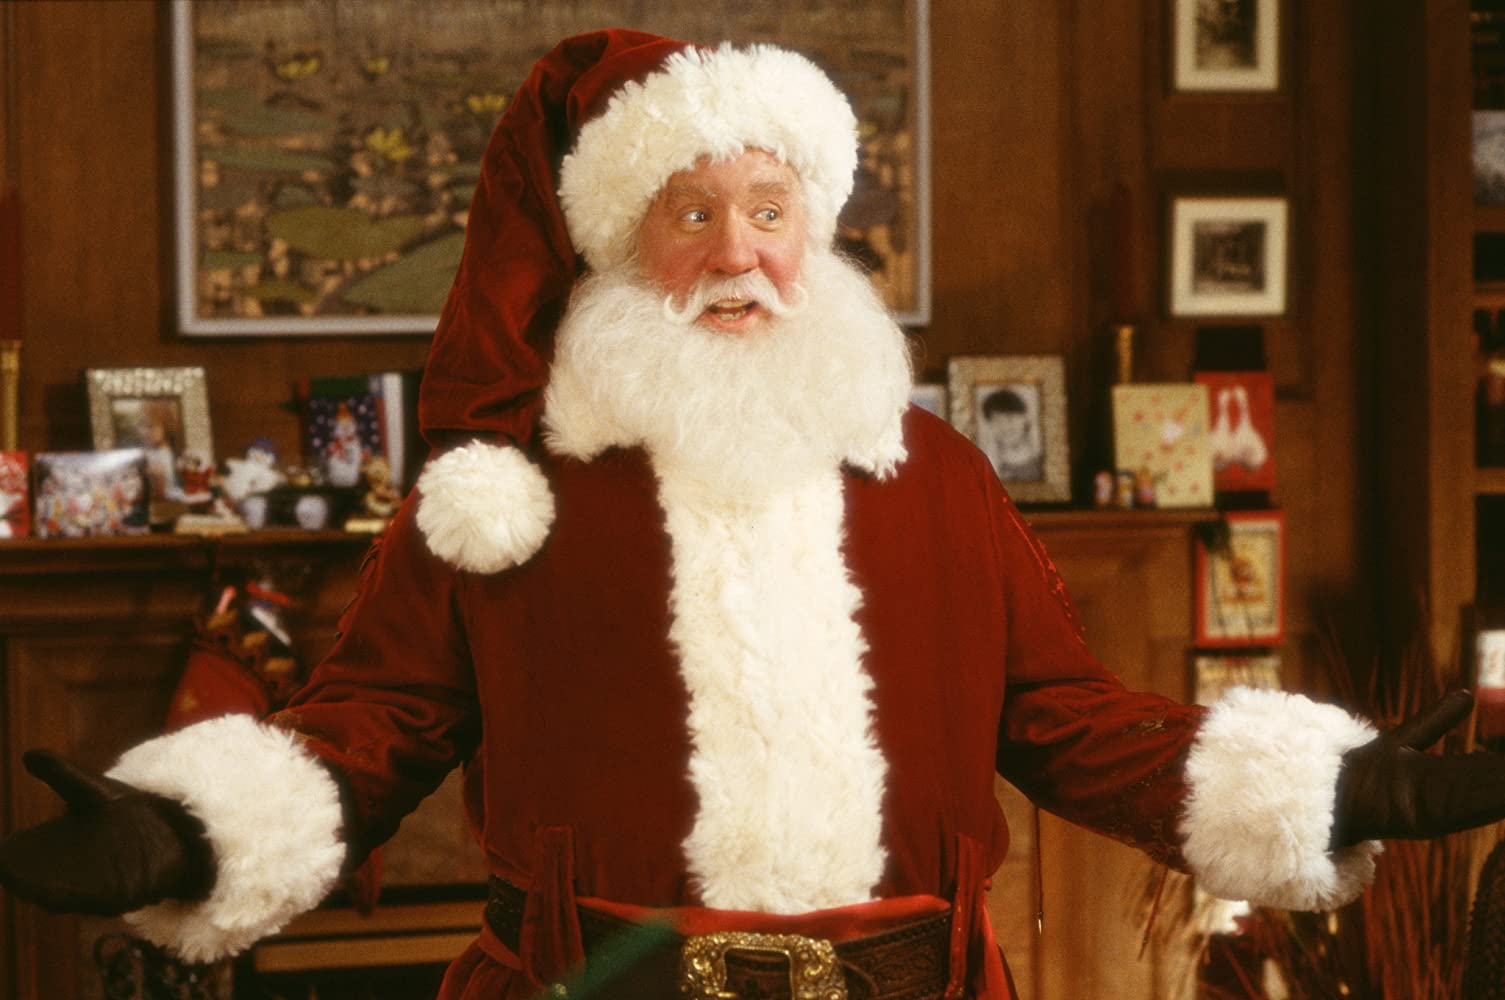 Top 25 Highest-Grossing Christmas Movies